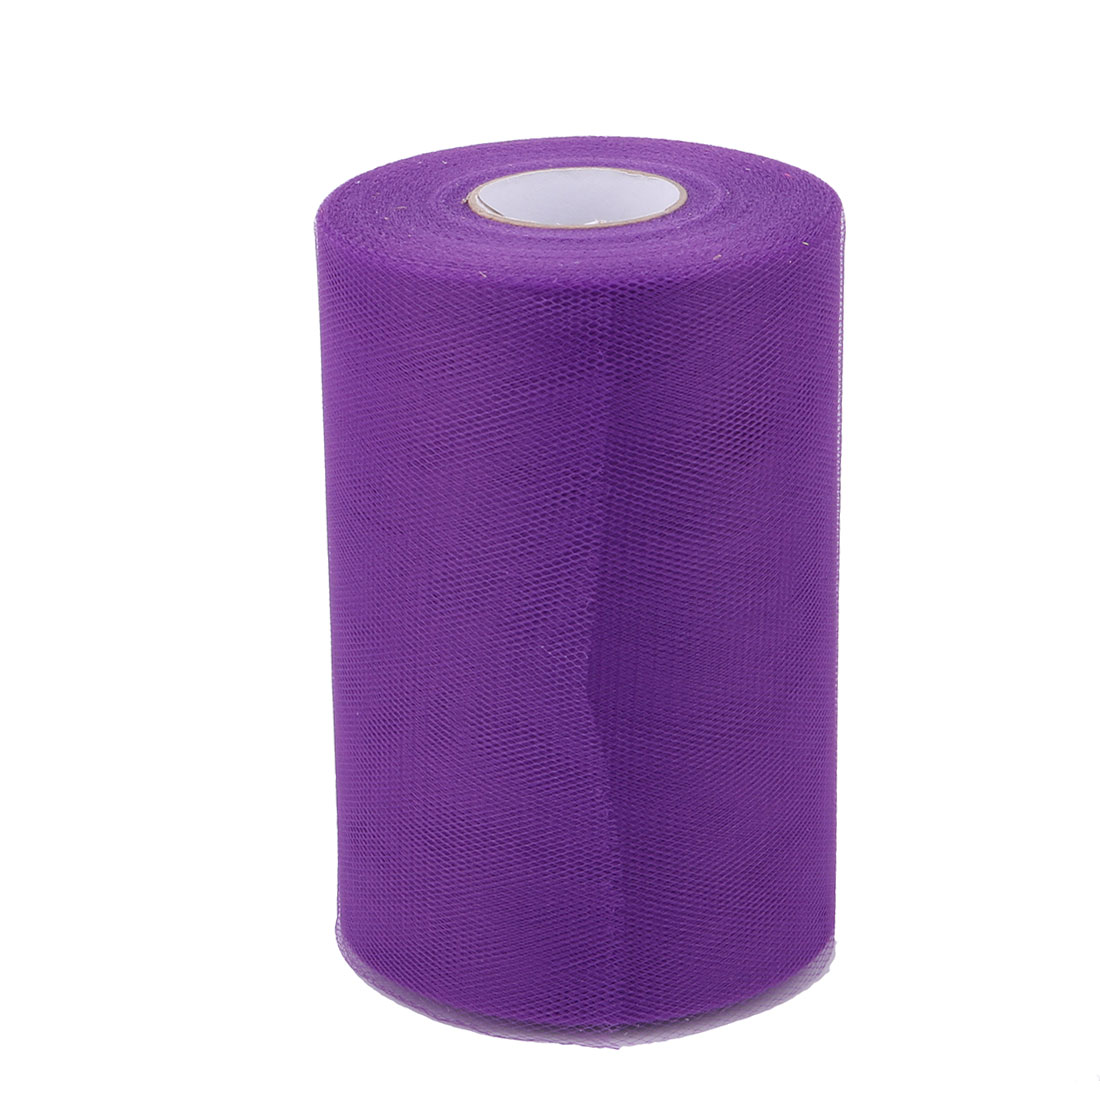 Family Dress Tutu Gift Decor Craft Tulle Spool Roll Purple 6 Inch x 100 Yards